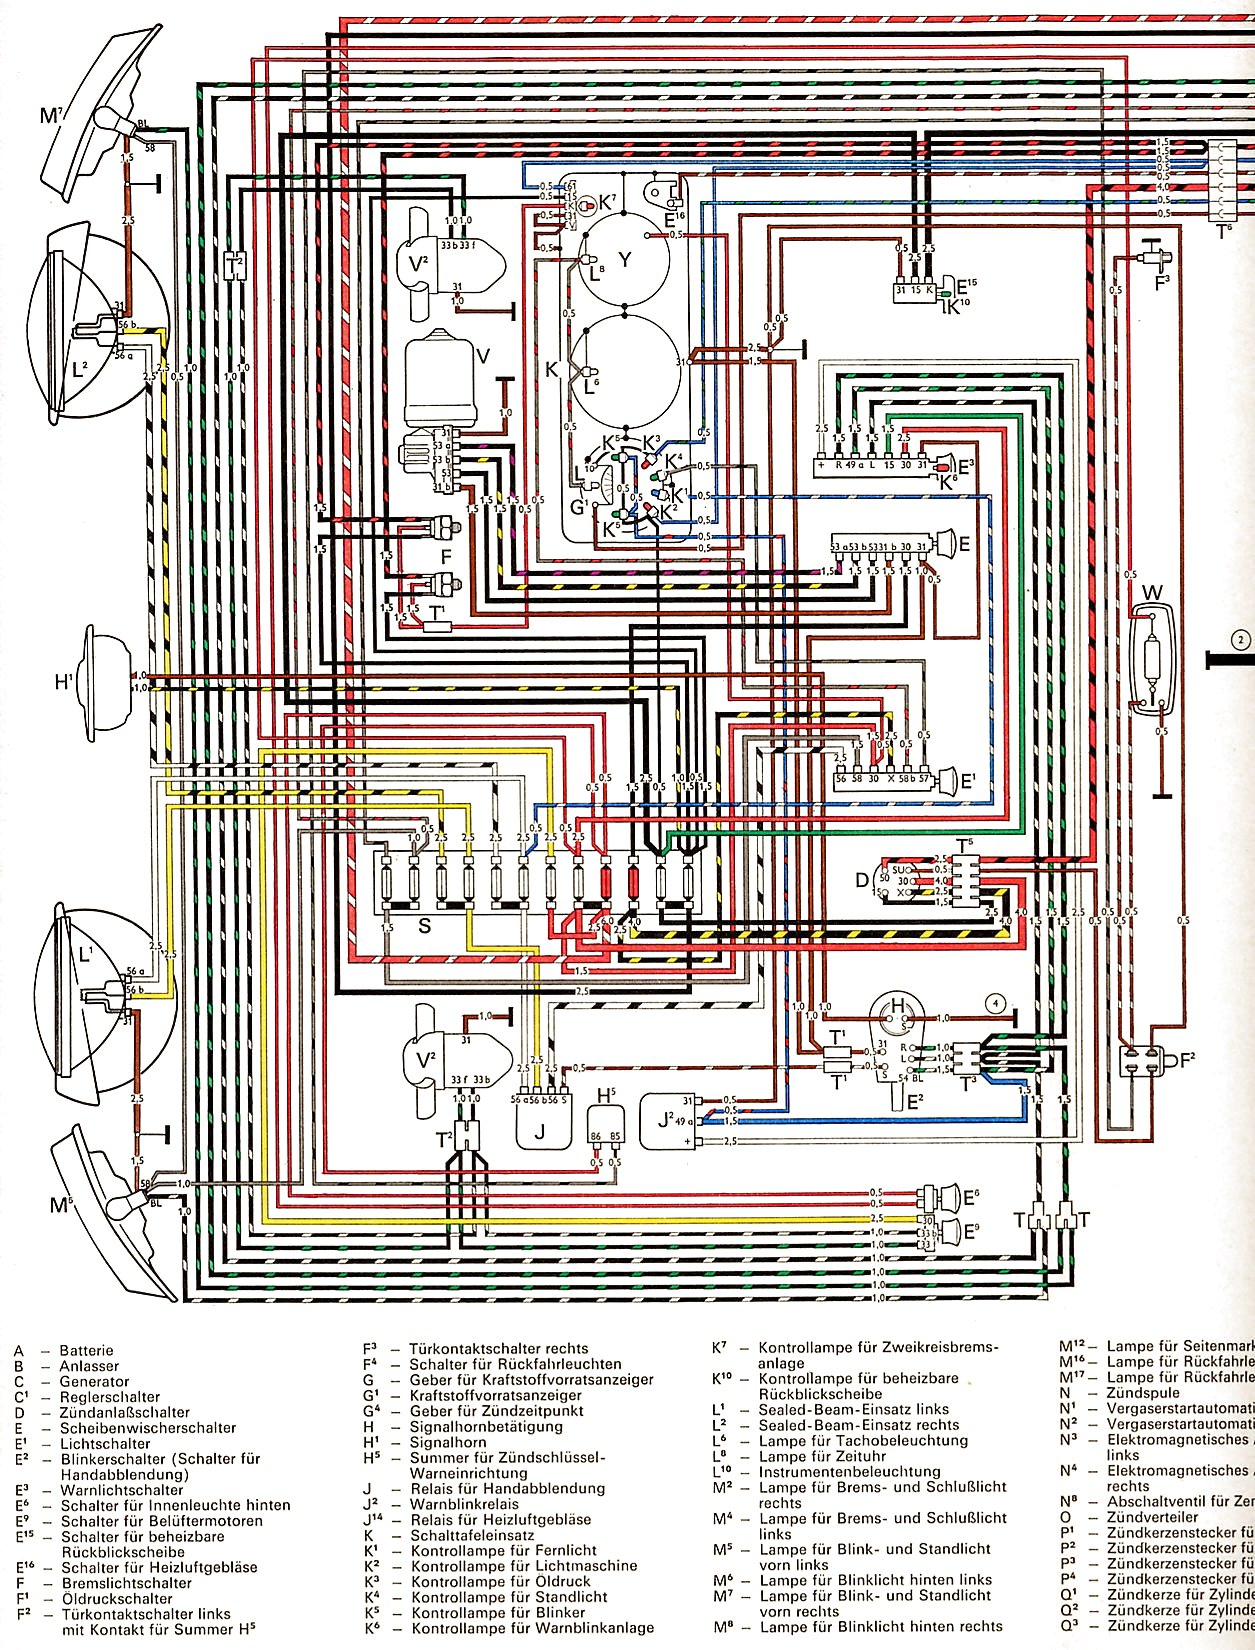 Transporter_USA_from_August_1971 1 how to read vw wiring diagrams basic motorcycle wiring diagram Wiring Harness Diagram at creativeand.co